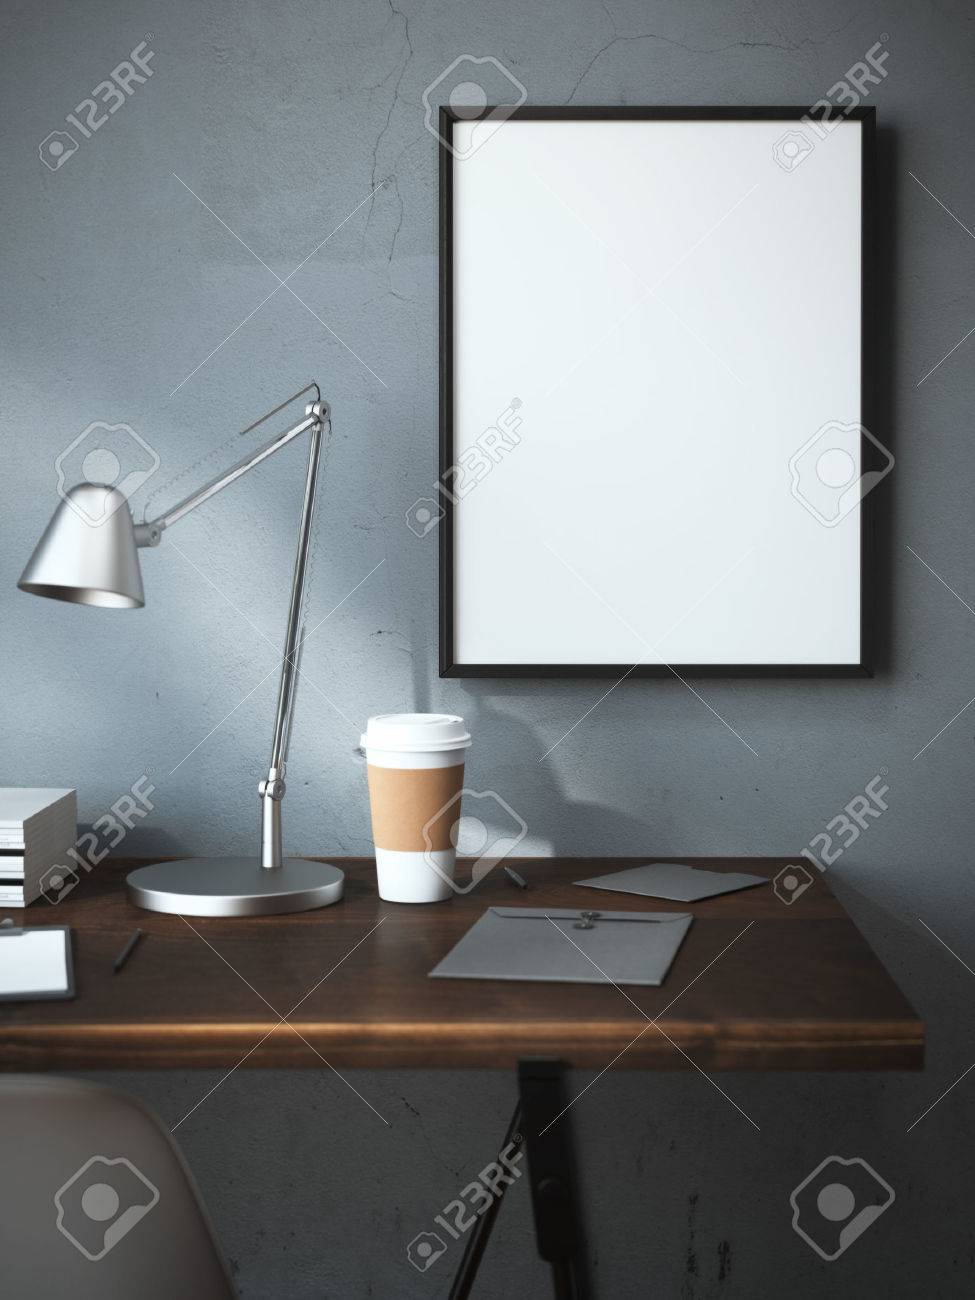 Workplace with cup and blank frame on the wall. 3d rendering - 47062928